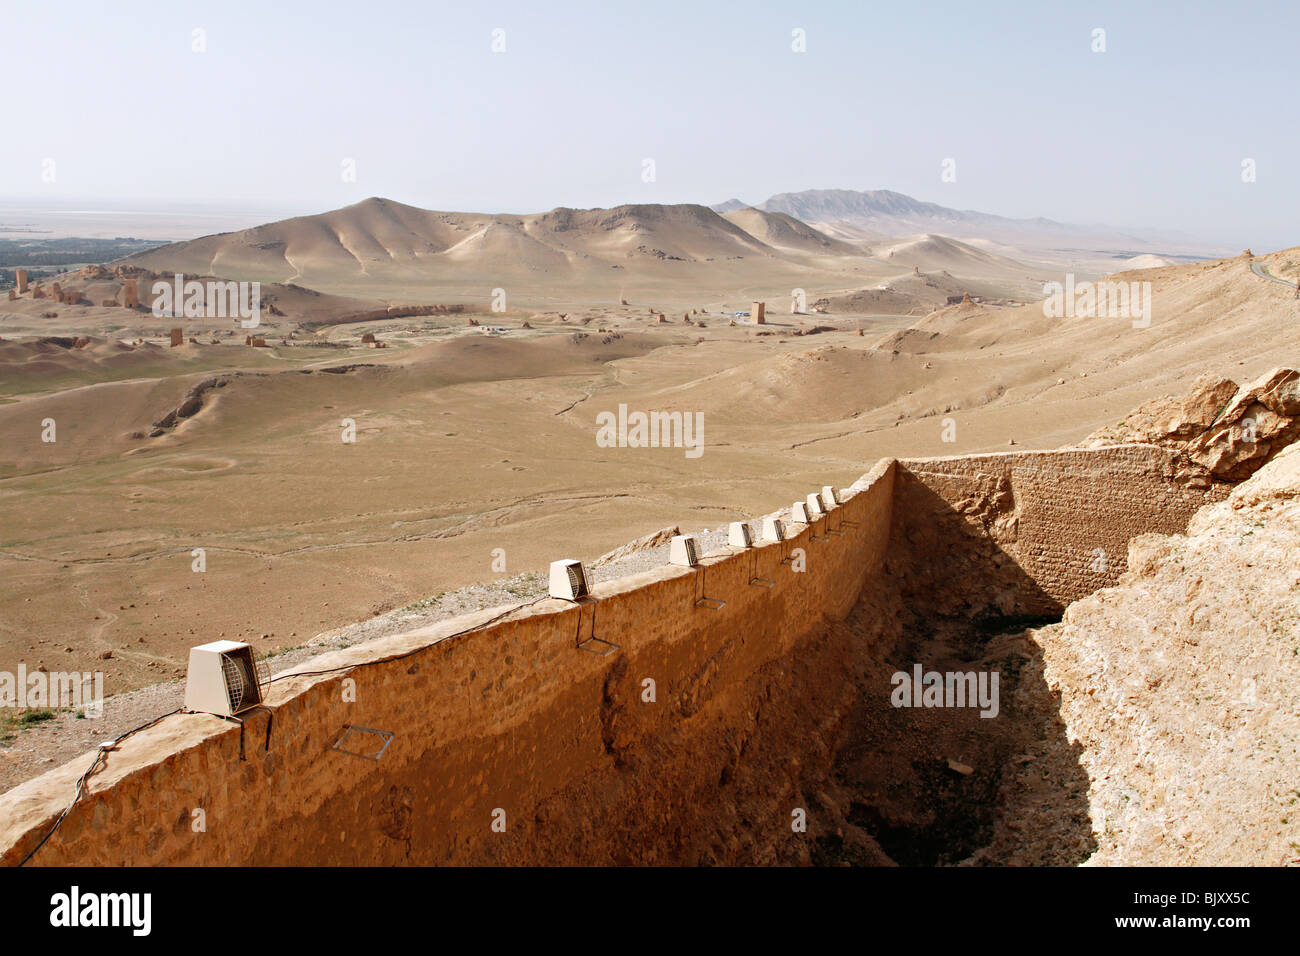 View of the Valley of the Tomb from Fakhreddin Almaan castle in Palmyra, Syria. - Stock Image